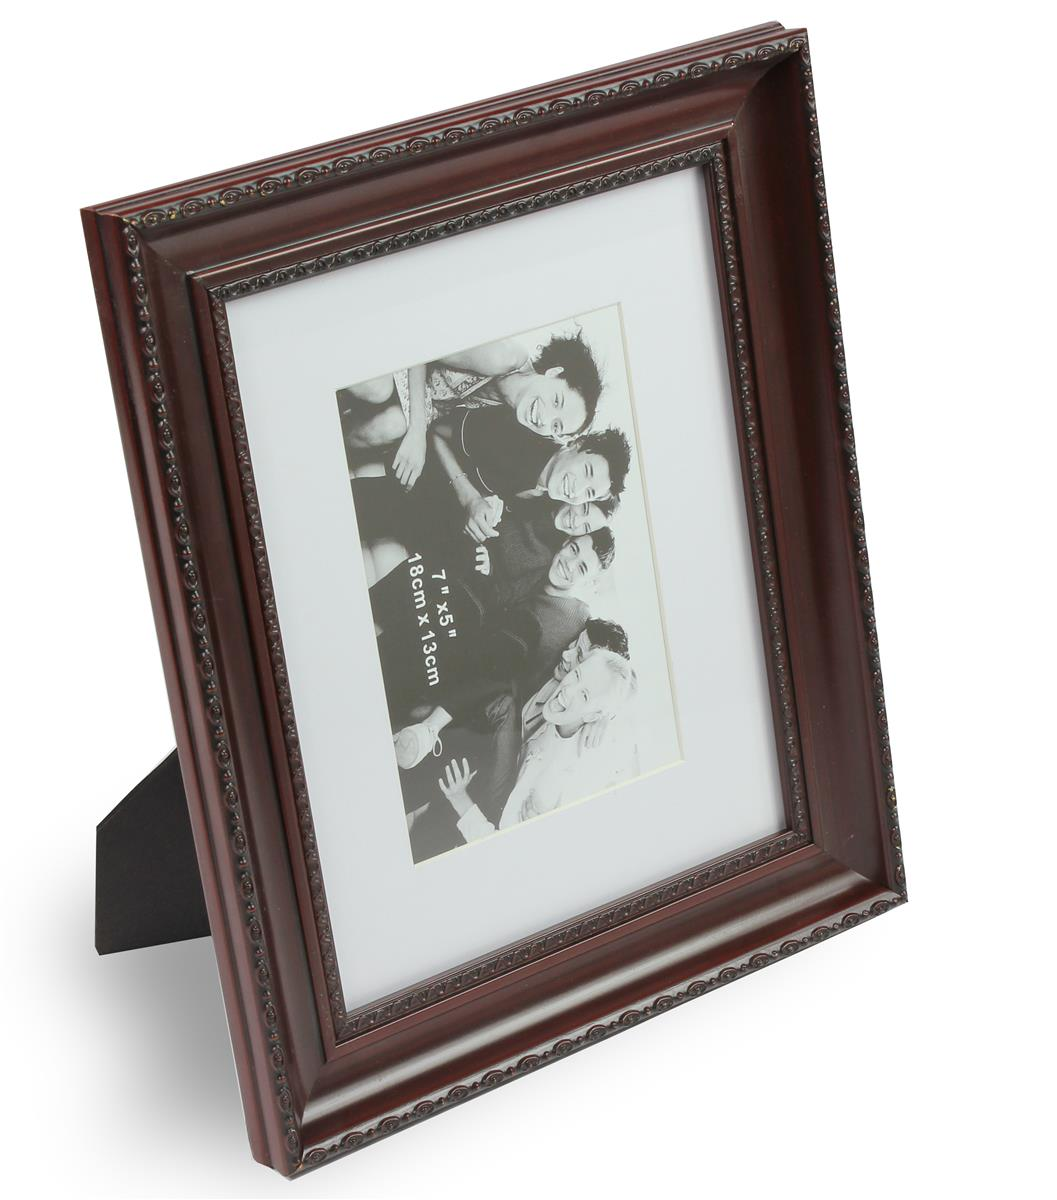 8 X 10 Mahogany Photo Picture Frame Matted To 5 X 7